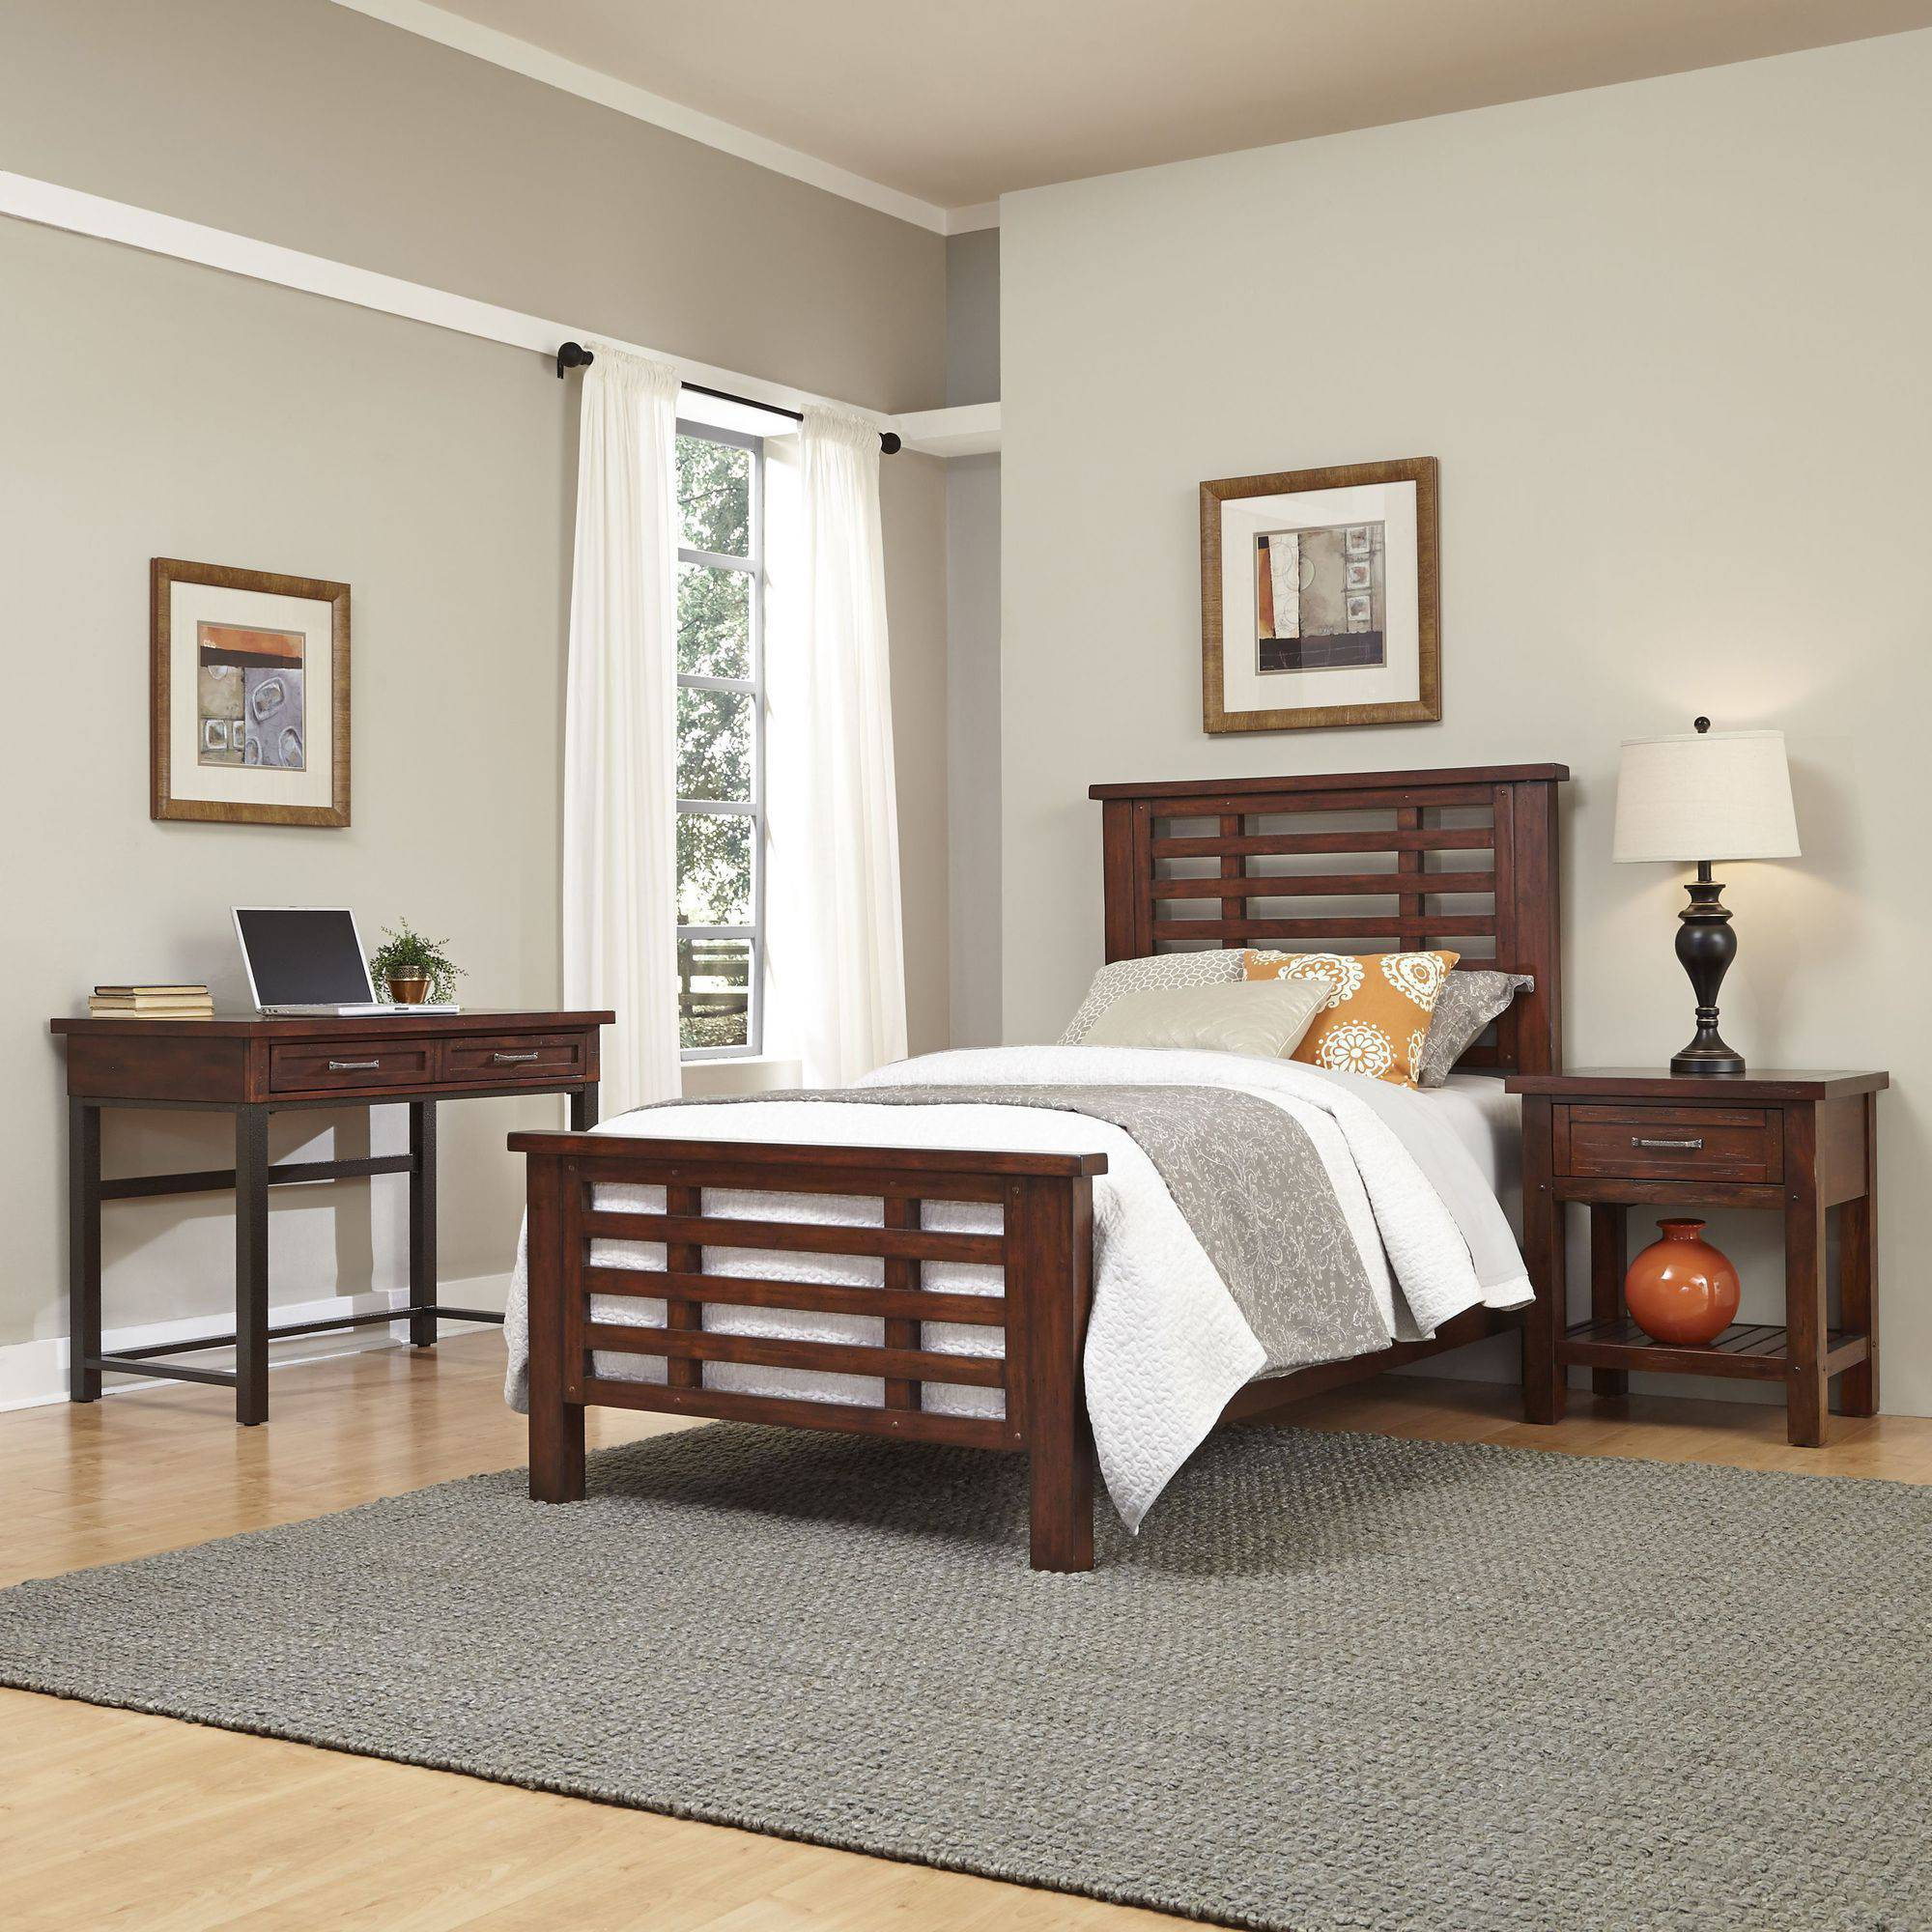 Home Styles Furniture Cabin Creek Twin Bed, Night Stand and Student Desk with Hutch